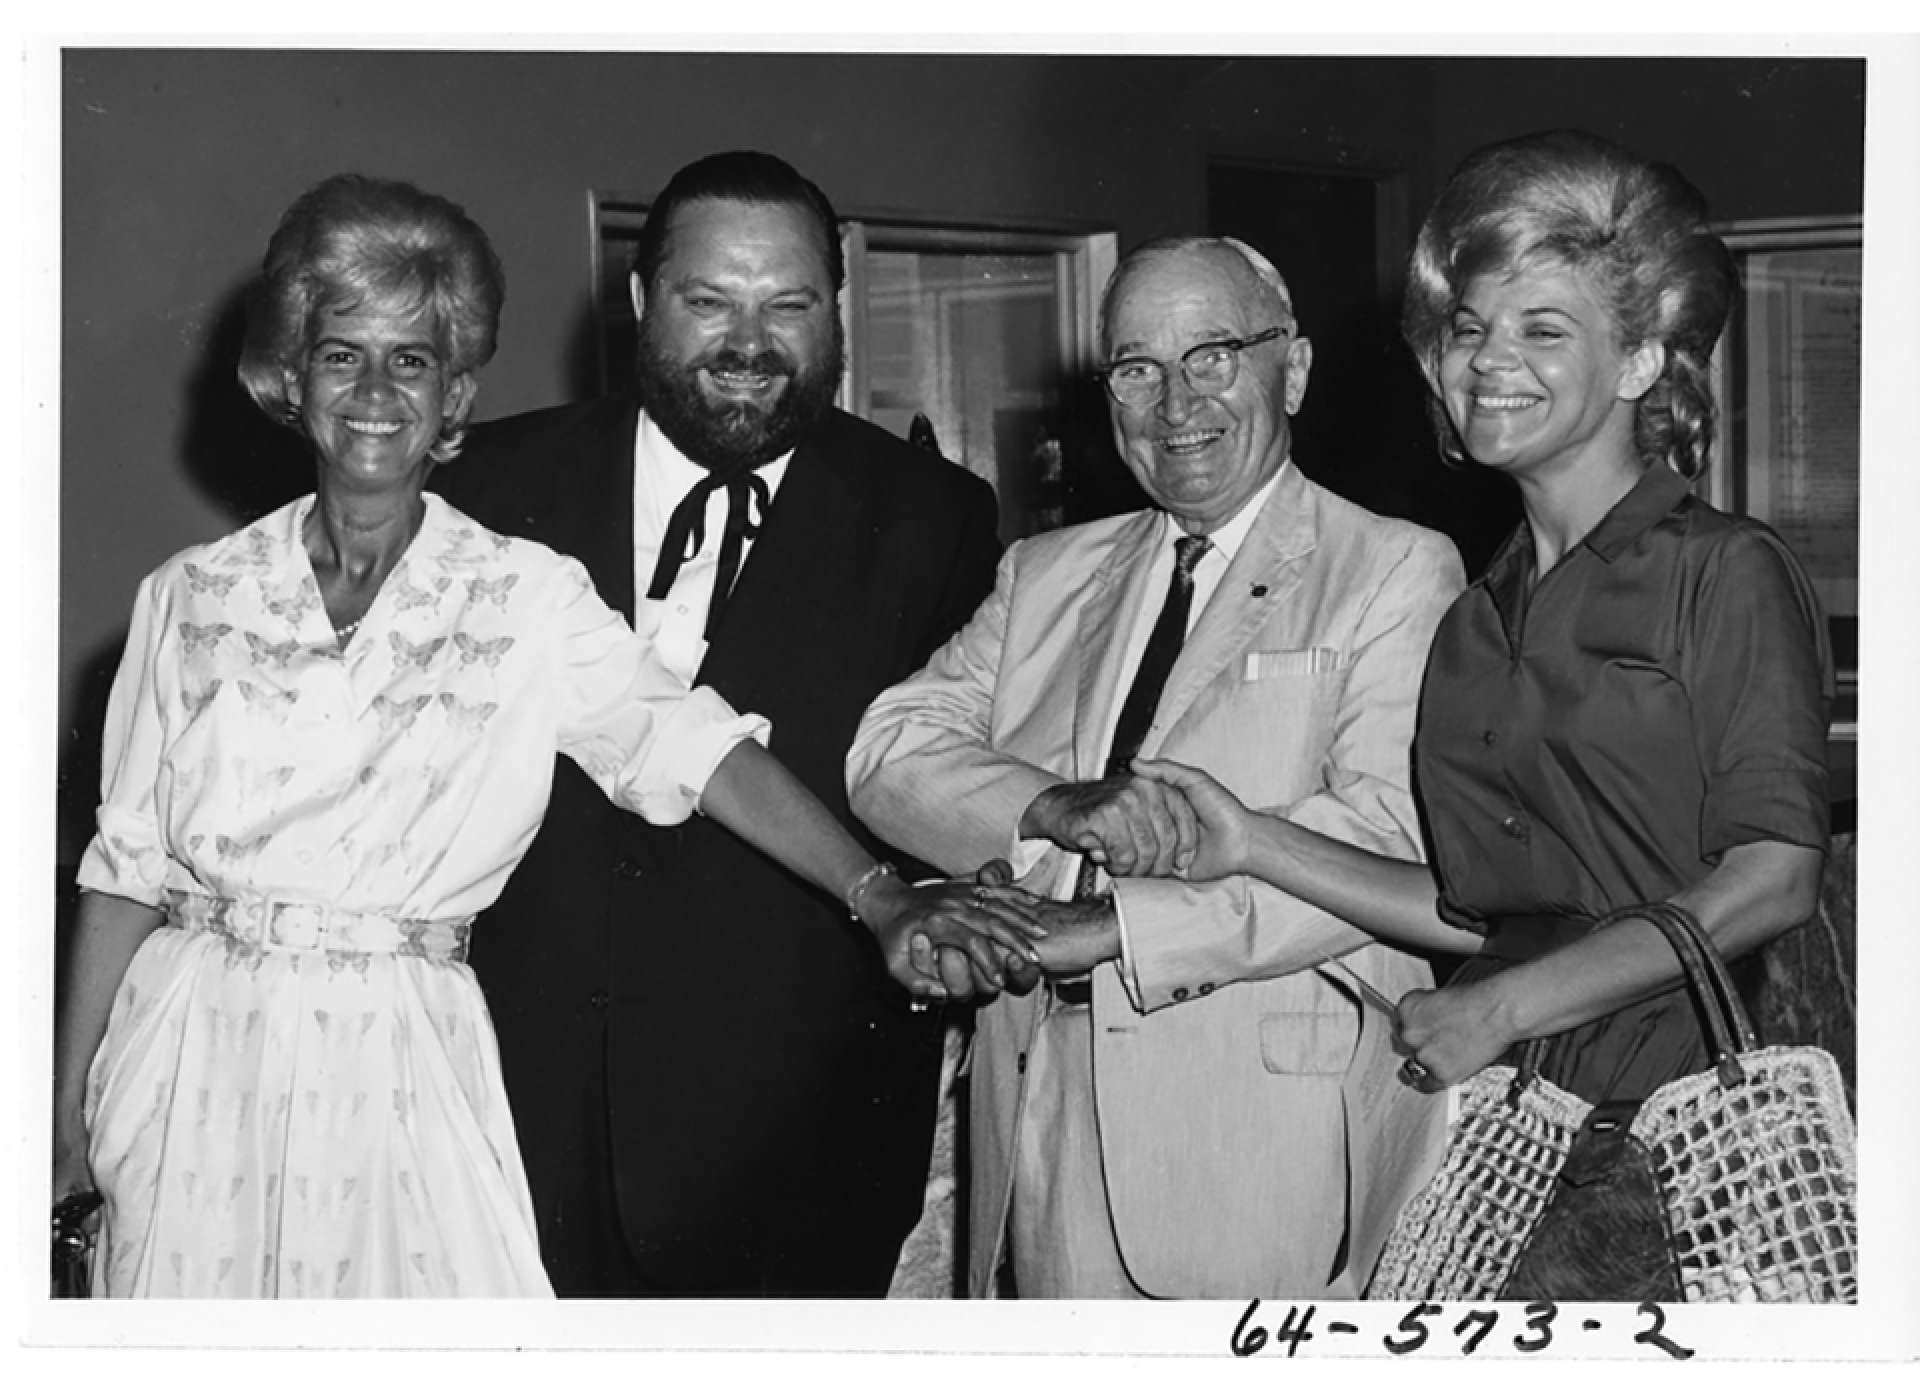 Former President Harry S. Truman and Al Hirt and family in the Harry S. Truman Library. July 19,1963 Courtesy: Harry S. Truman Library and Museum.